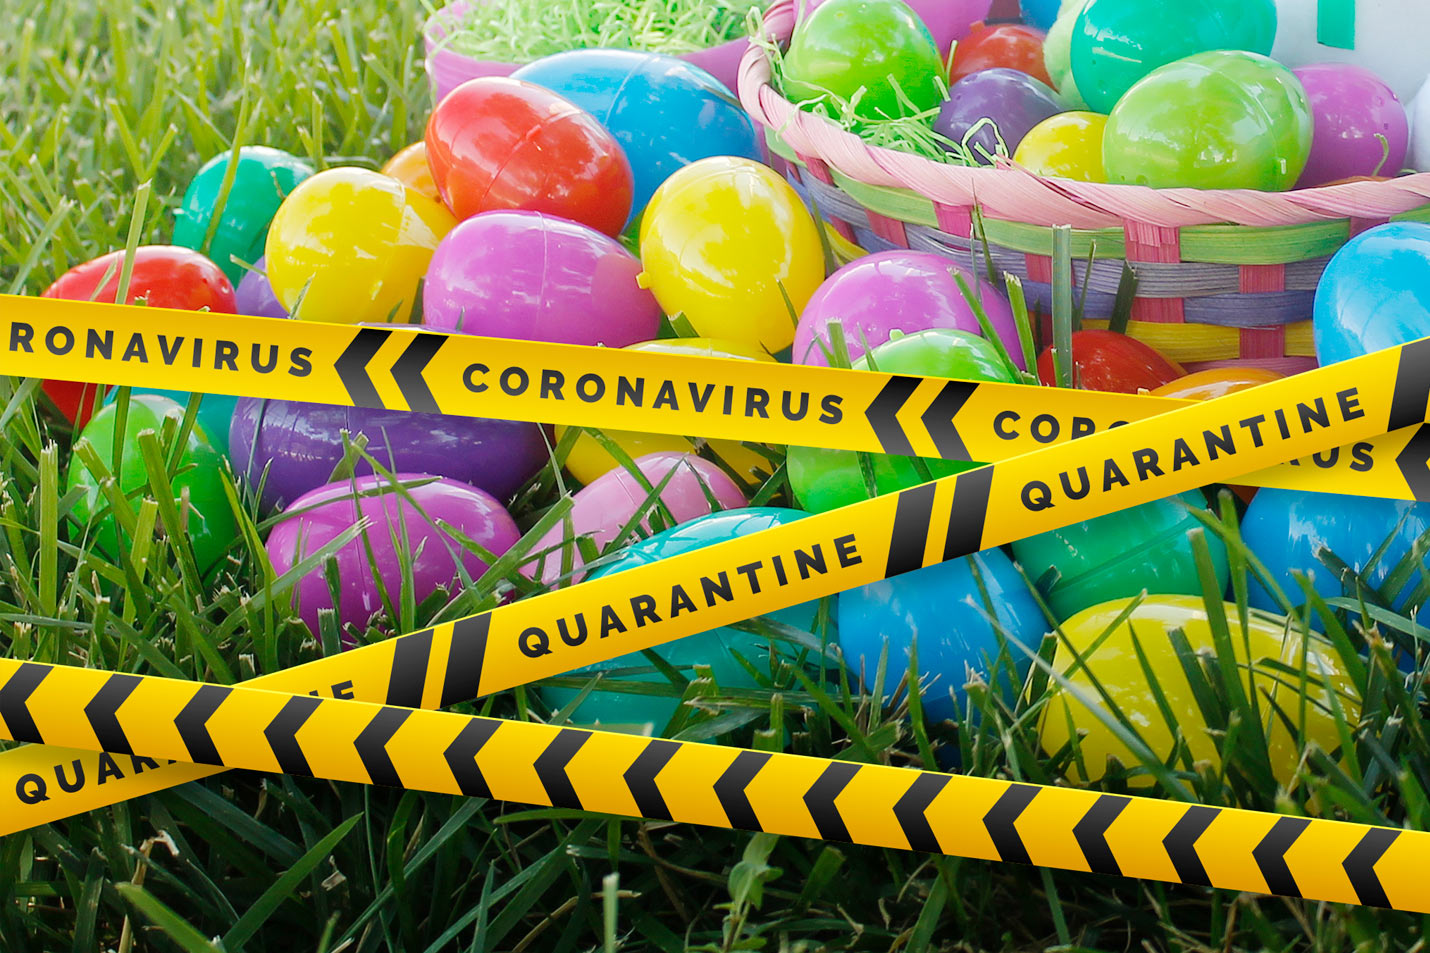 5 safe and festive ways to celebrate Easter during quarantine